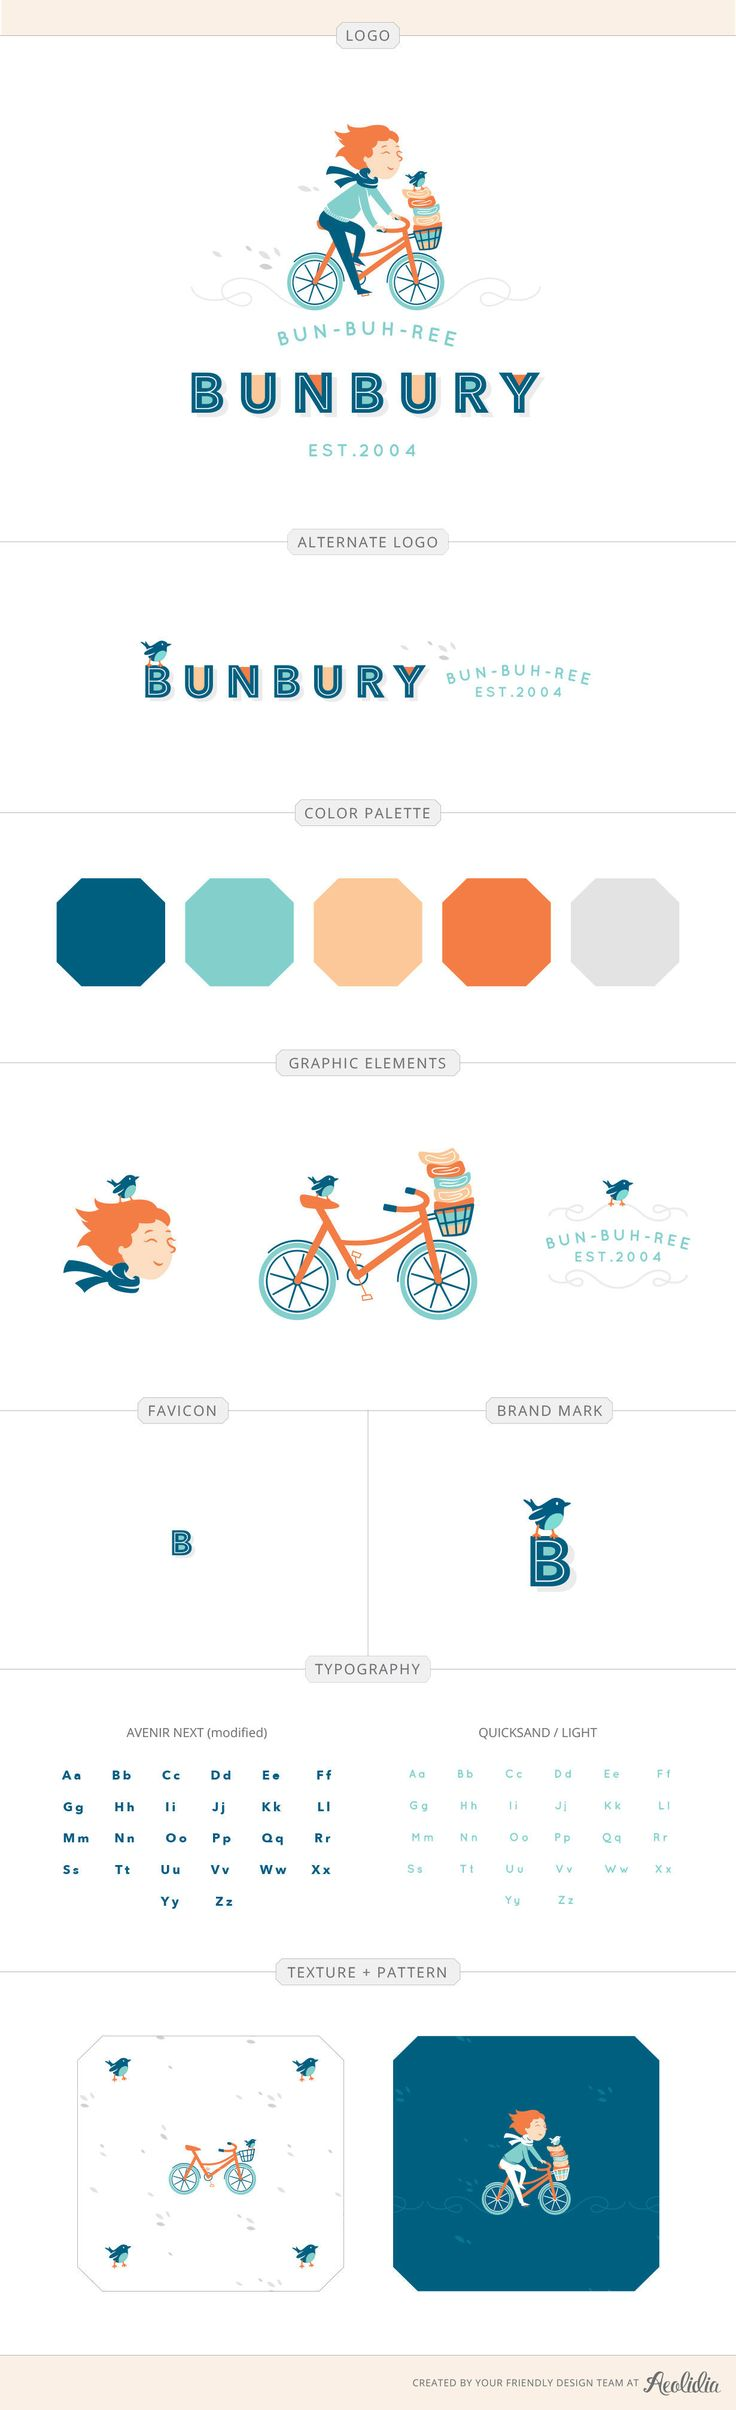 Bunbury design by Aeolidia. Fabric shop illustrated logo of a girl on a bicycle.